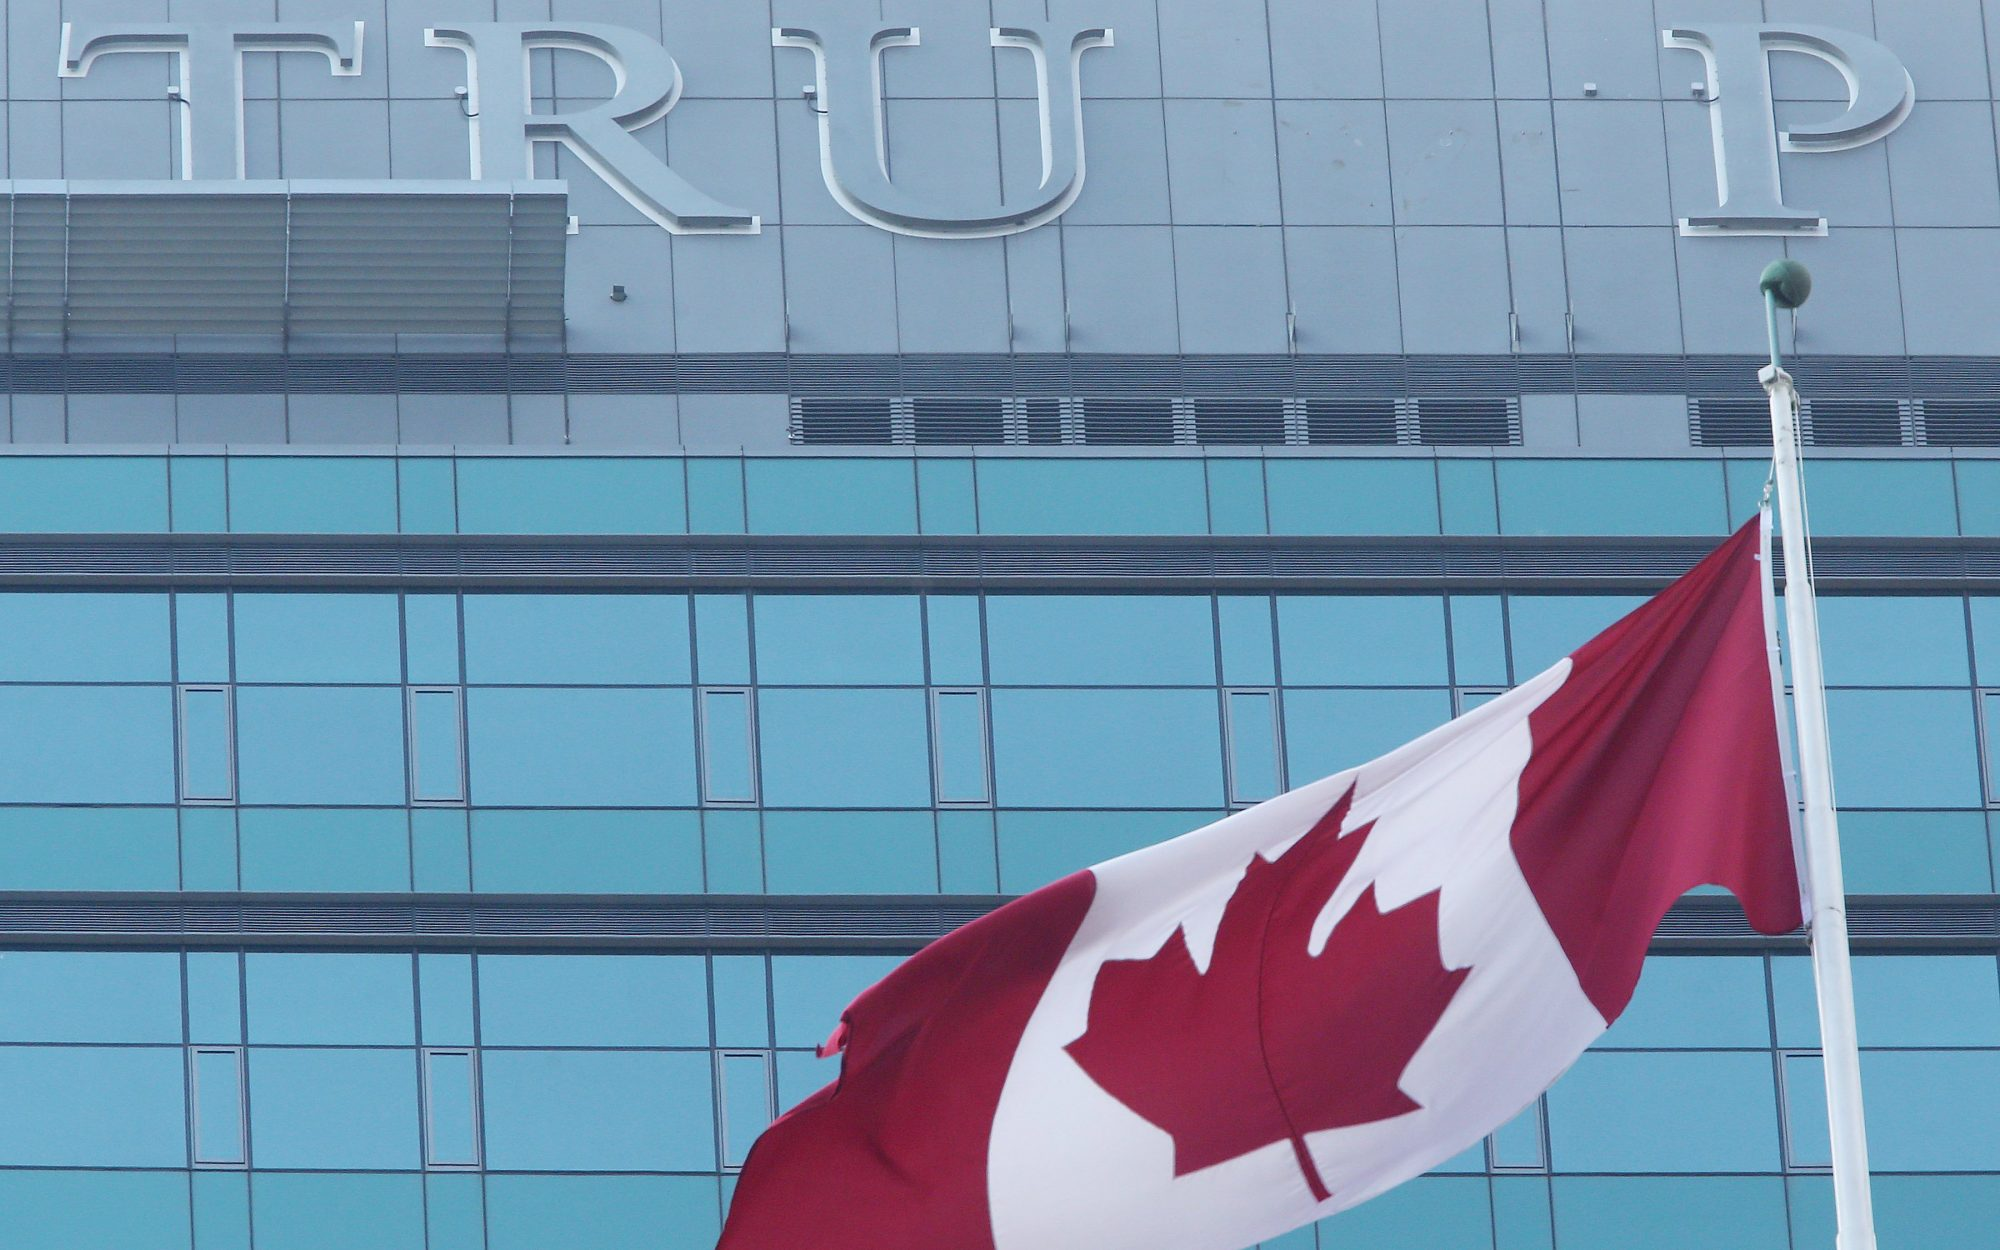 trump hotel toronto name removed